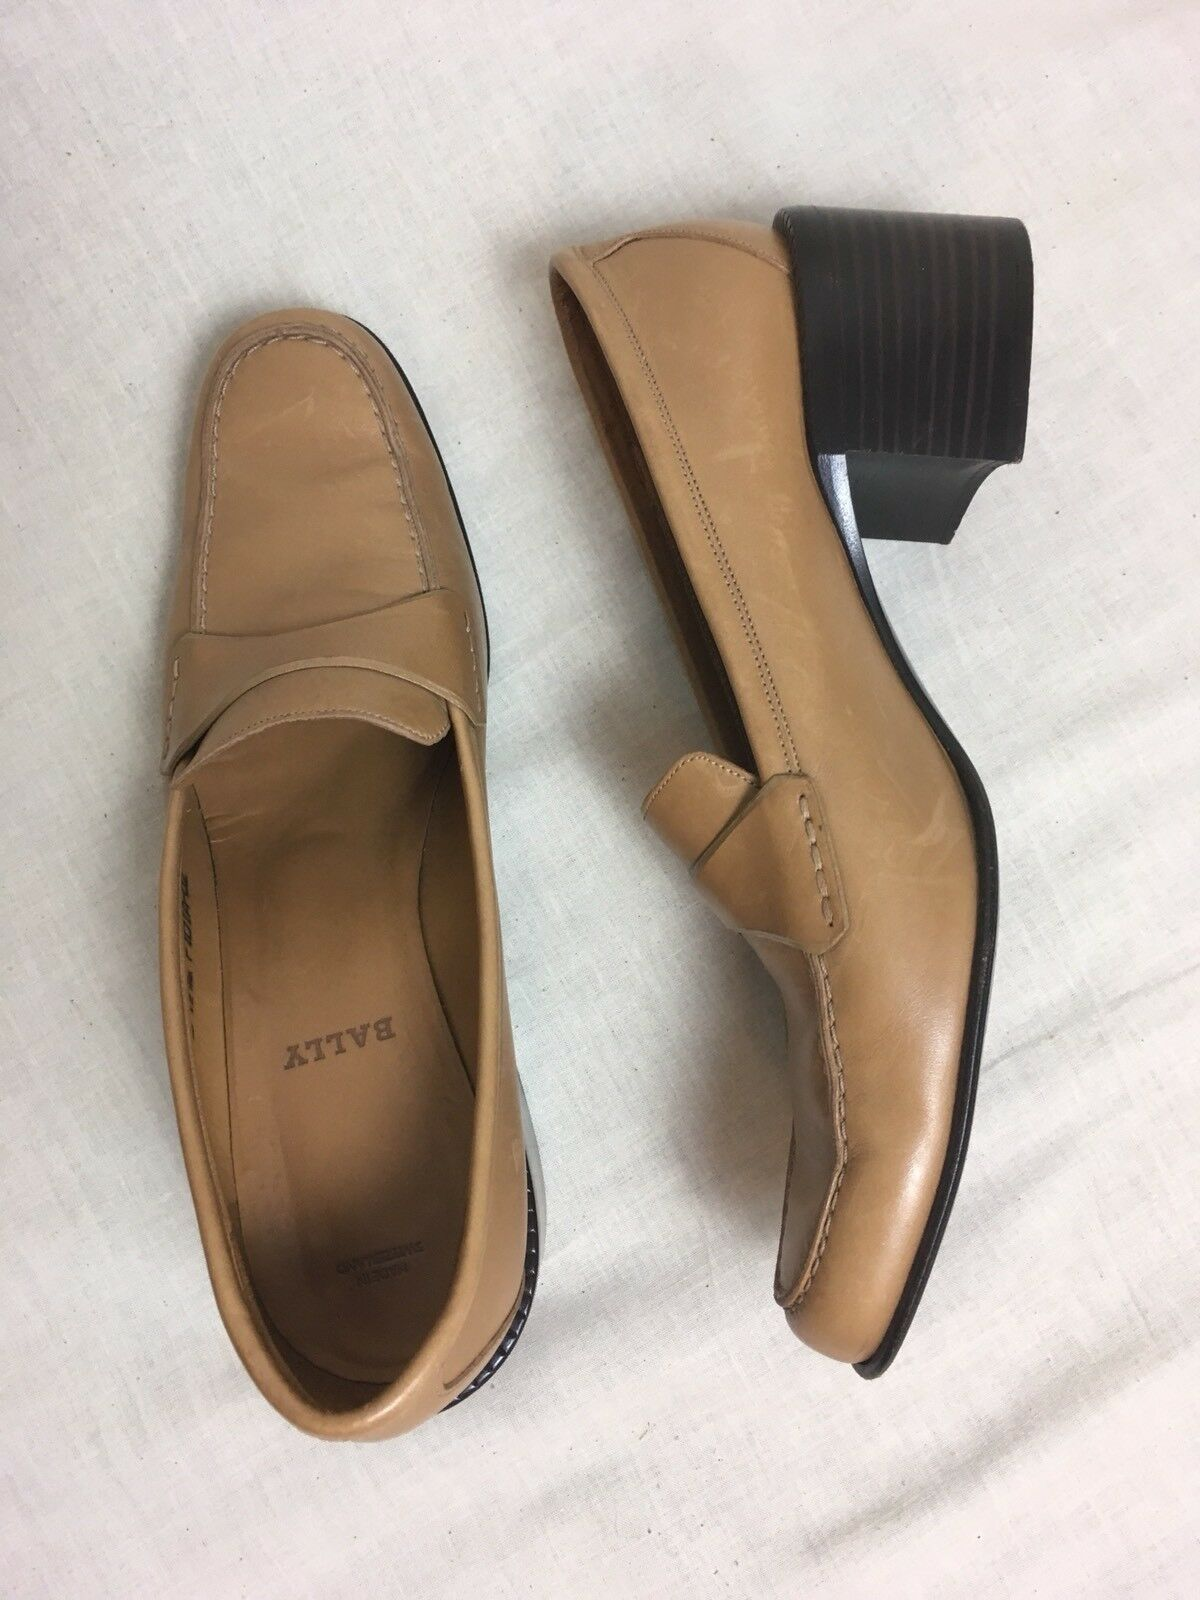 Vintage Donna's BALLY Loafers All Pelle Camel Block Heel Donna's Vintage Sz 8 (Made in Italy) 1a230f